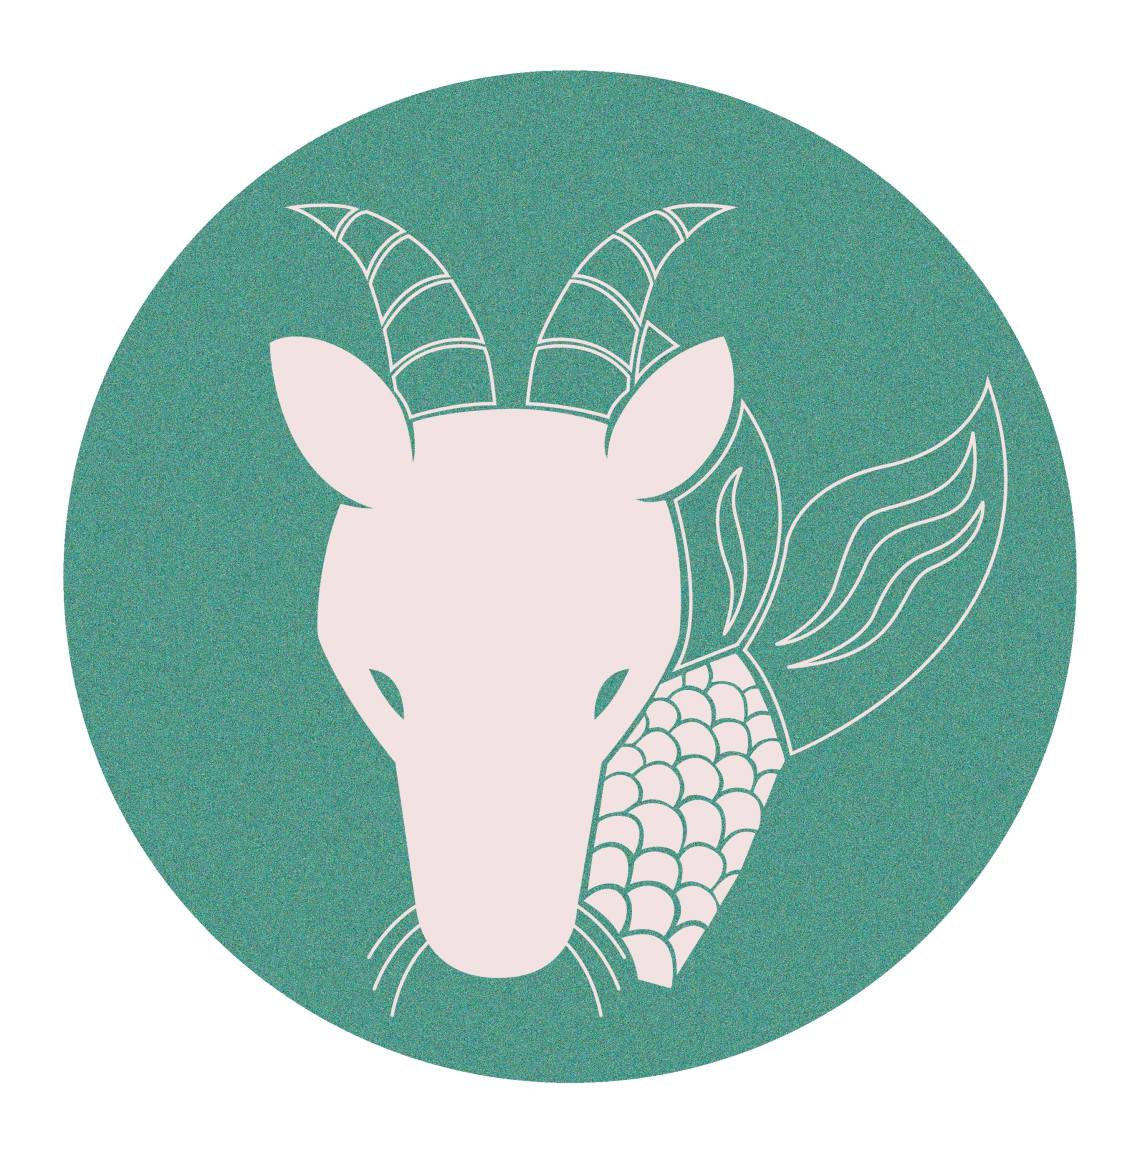 Find the daily horoscope for Capricorn zodiac signs for  September 7, 2021.